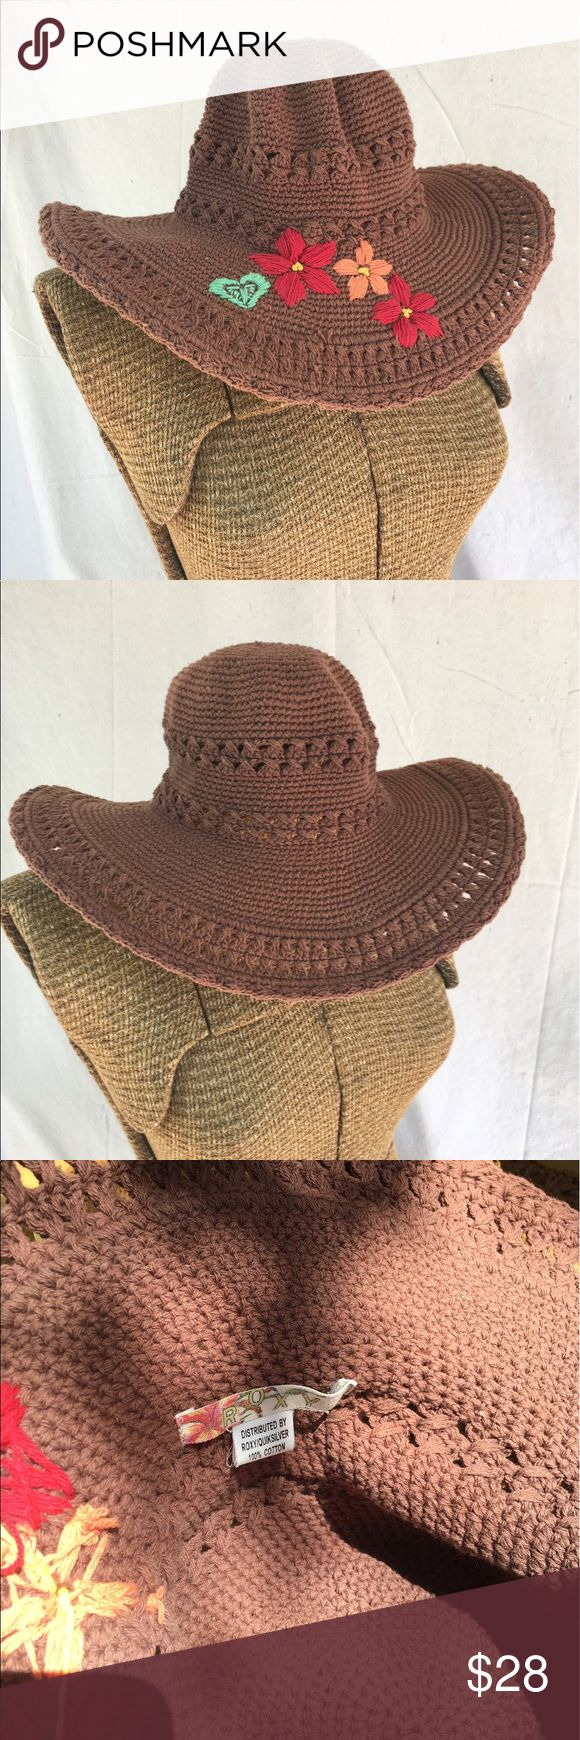 Vintage embroidered Roxy woven hat Chocolate brown summer hat with red, orange, and green embroidered flowers and heart.  Woven design with flexible styling brim.  Roxy brand - vintage, boho, bohemian, summer, vacation, beach Roxy Accessories Hats